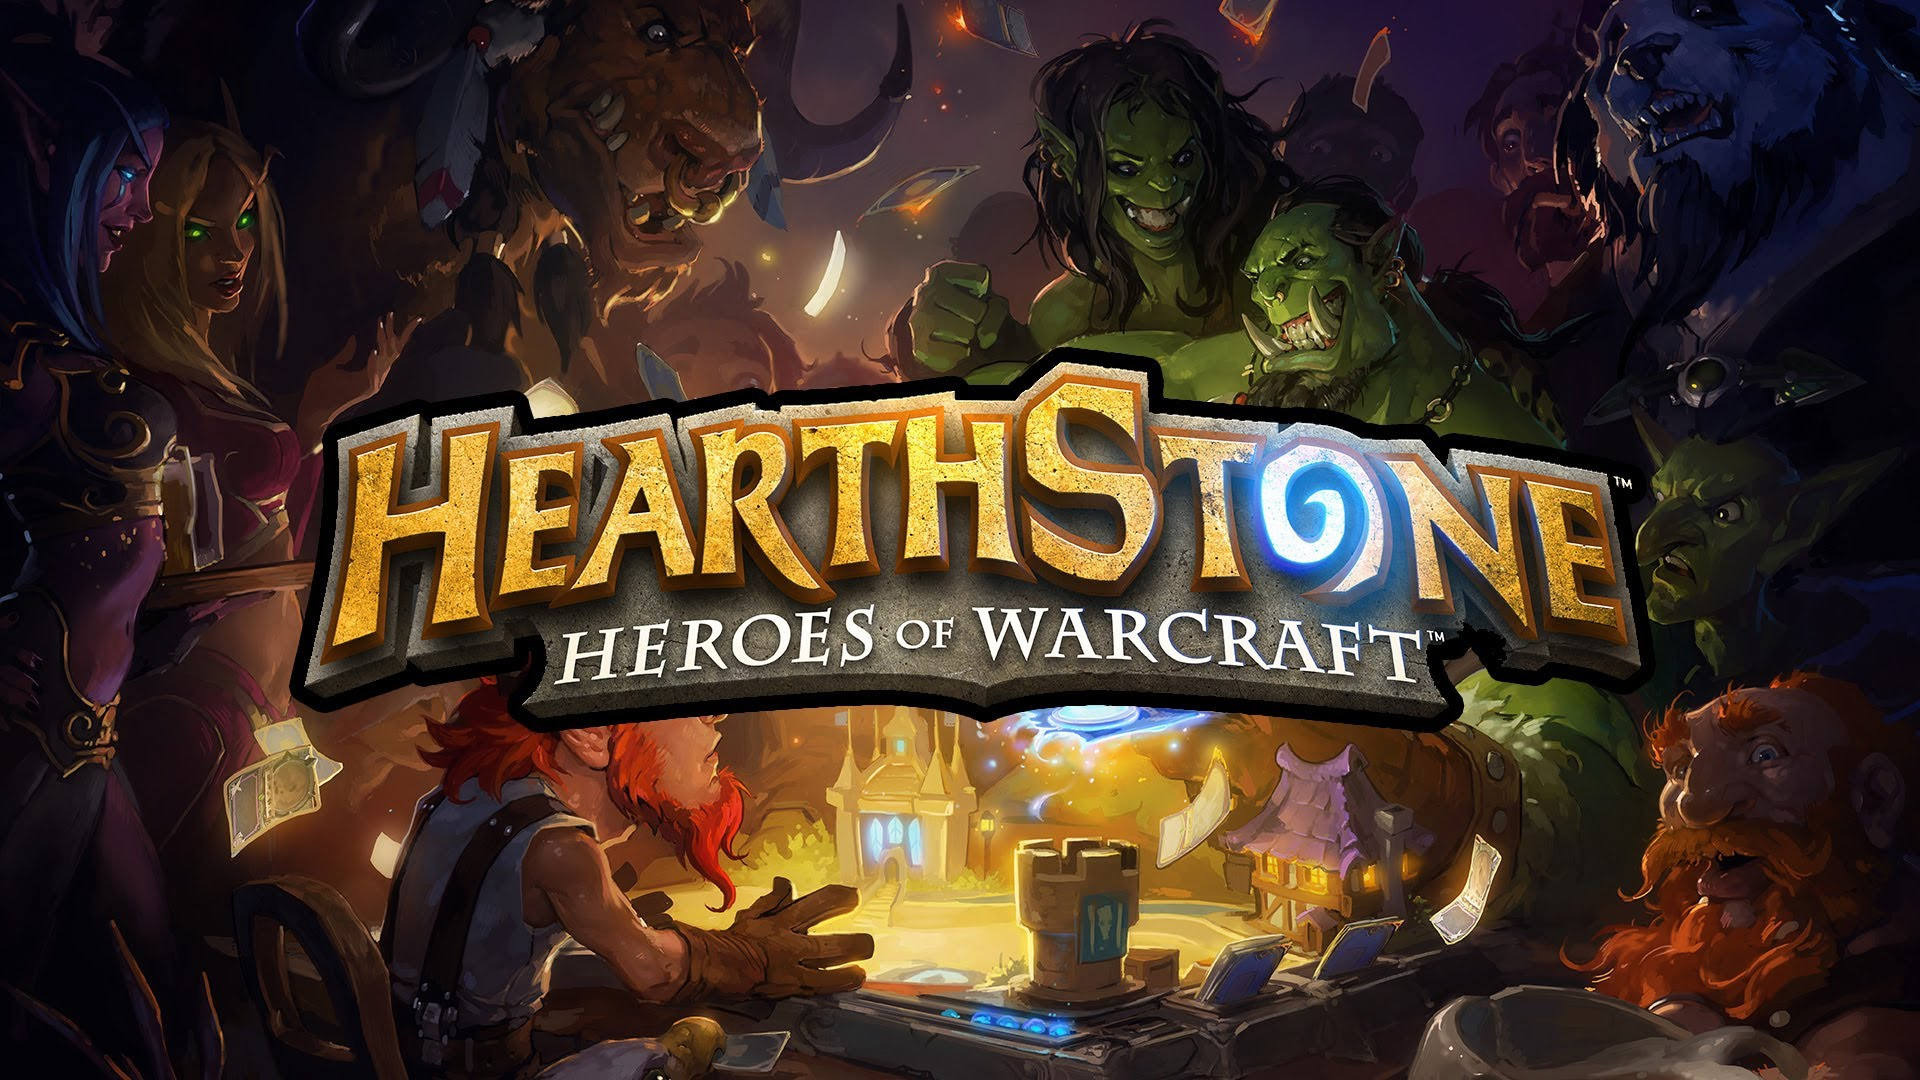 Next Hearthstone set revealed, all players get three free packs and a Legendary